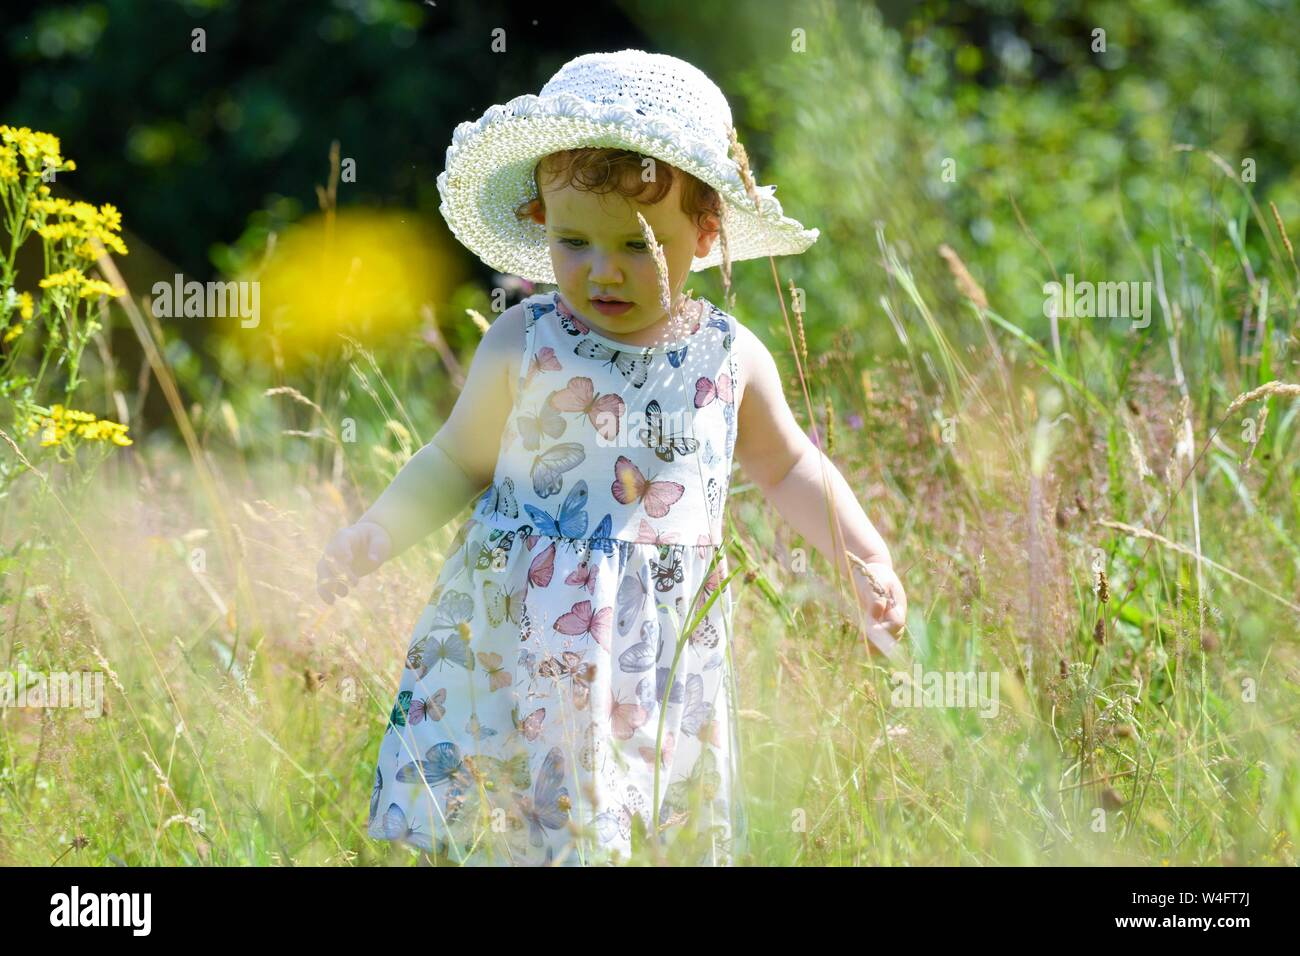 Gower, Wales UK. 23rd July 2019. UK Weather: Pictured is toddler Lillian Joy, enjoying the scorching sunshine in a summer dress and hat, on the Gower Peninsular in South Wales, as temperatures soar across the UK at the start on the Summer school holidays, on the hottest day of the year to date. Credit : Robert Melen/Alamy Live News Stock Photo